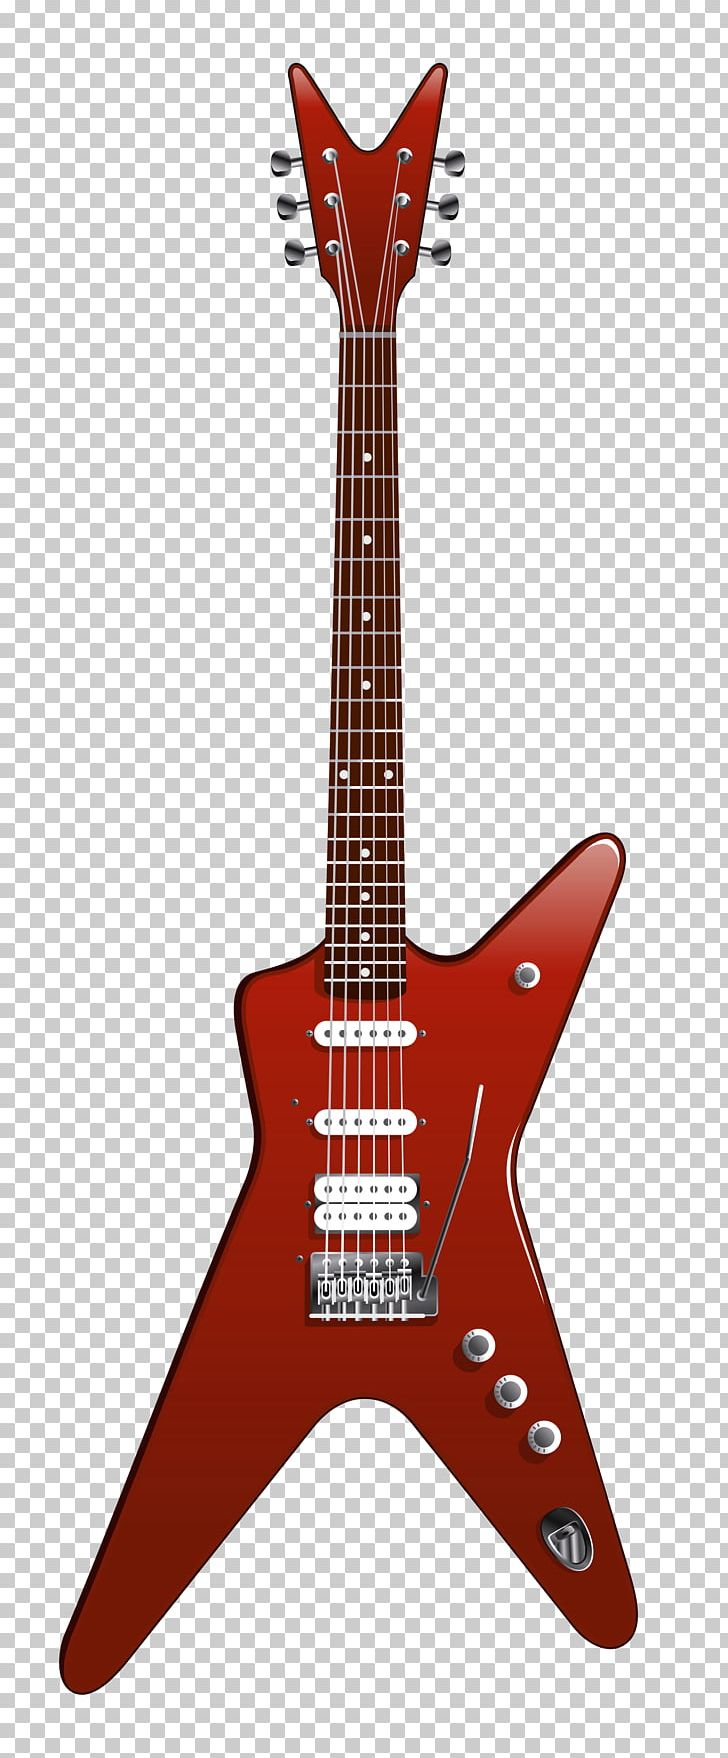 Electric Guitar Fender Stratocaster PNG, Clipart, Acoustic Electric Guitar, Cartoon, Classical Guitar, Electronic Musical Instrument, Fender Bullet Free PNG Download